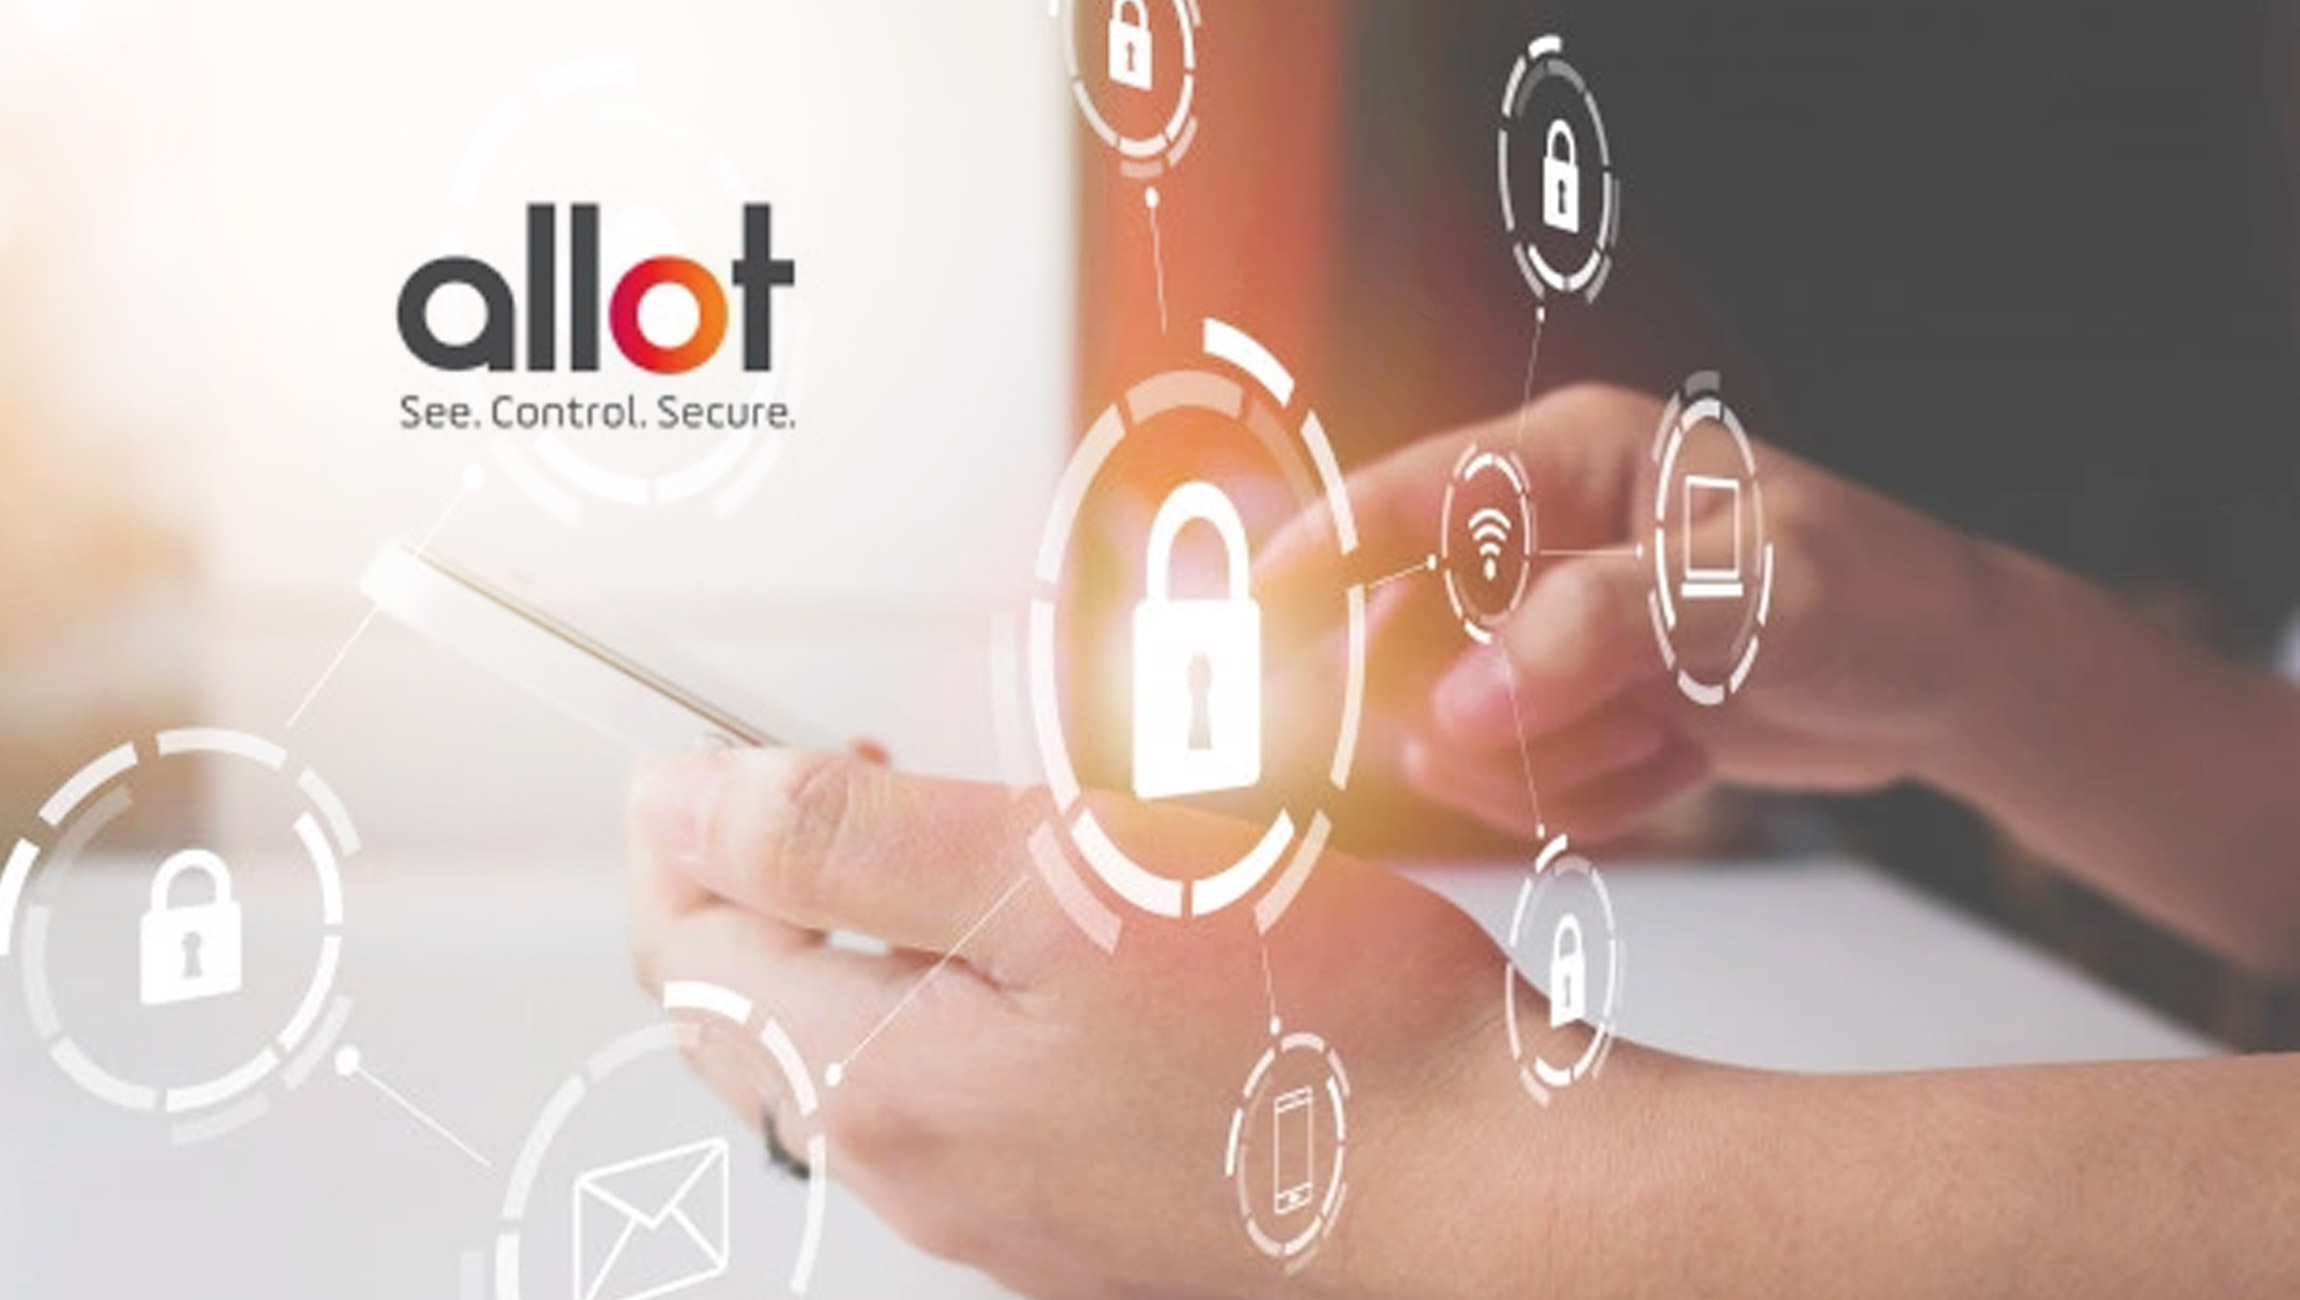 Central European CSP Selects Allot to Provide Cybersecurity Services to Their Consumer Customers